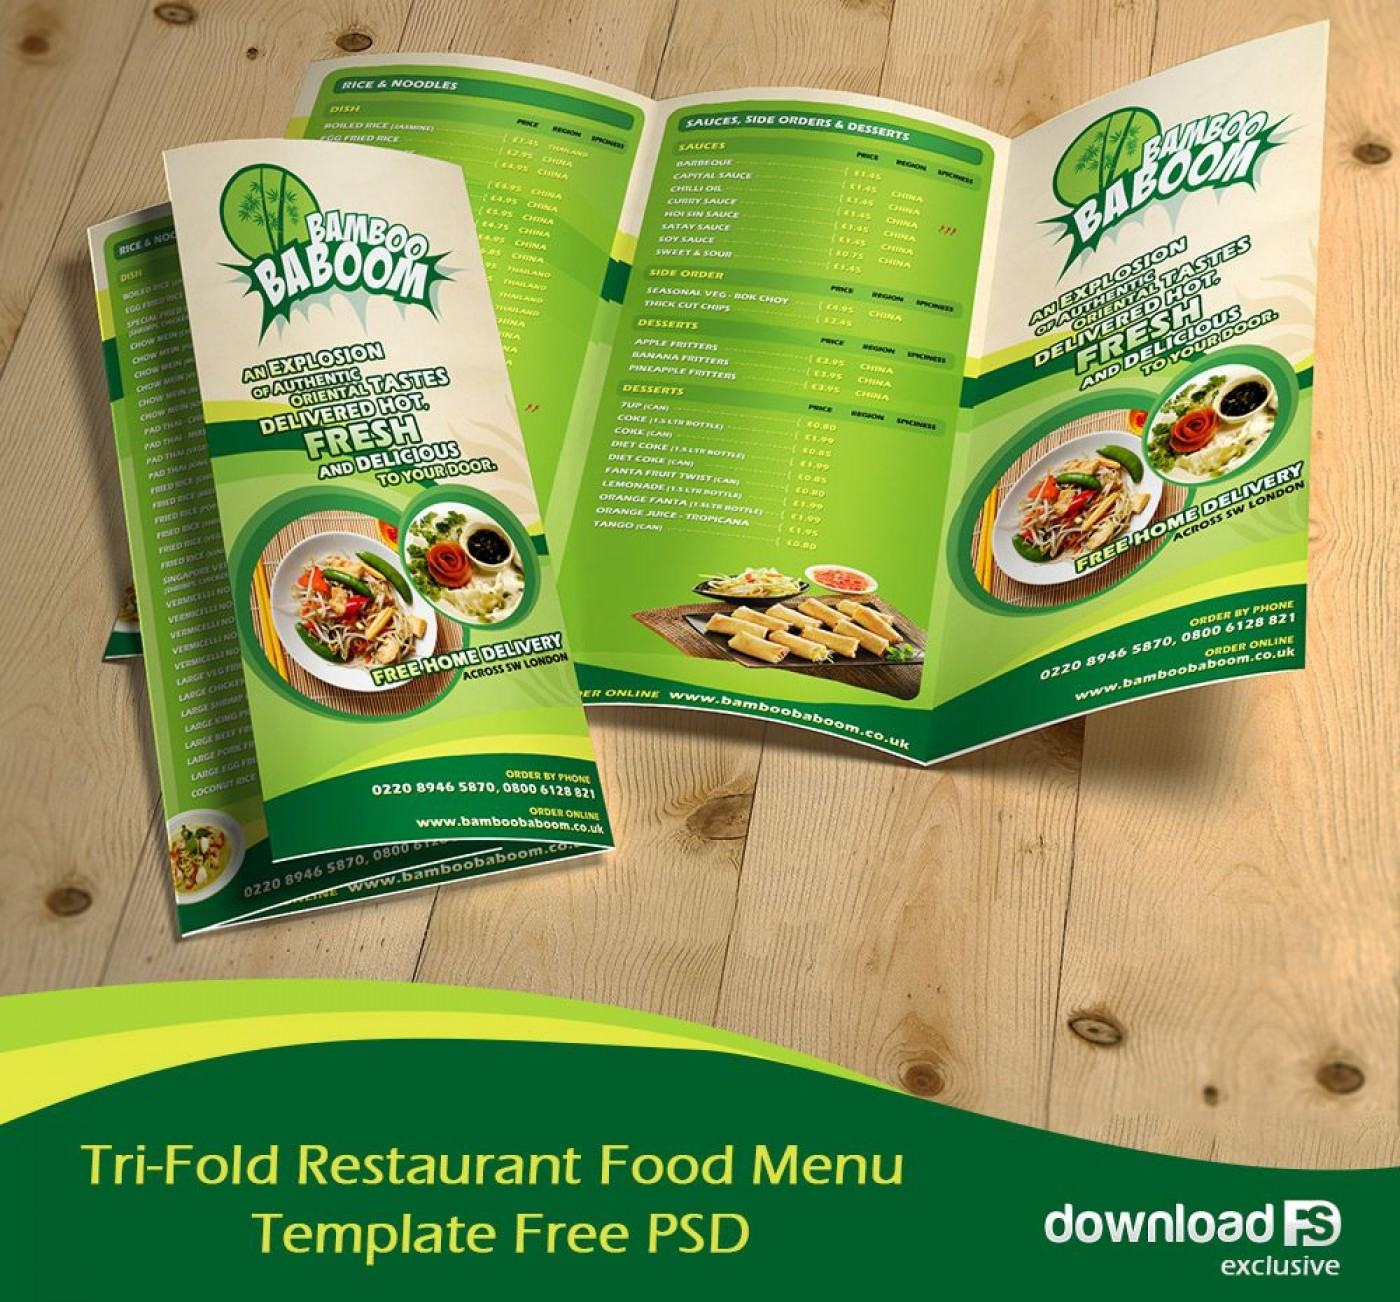 002 Magnificent Tri Fold Menu Template Free Design  Wedding Tri-fold Restaurant Food Psd Brochure Cafe Download1400